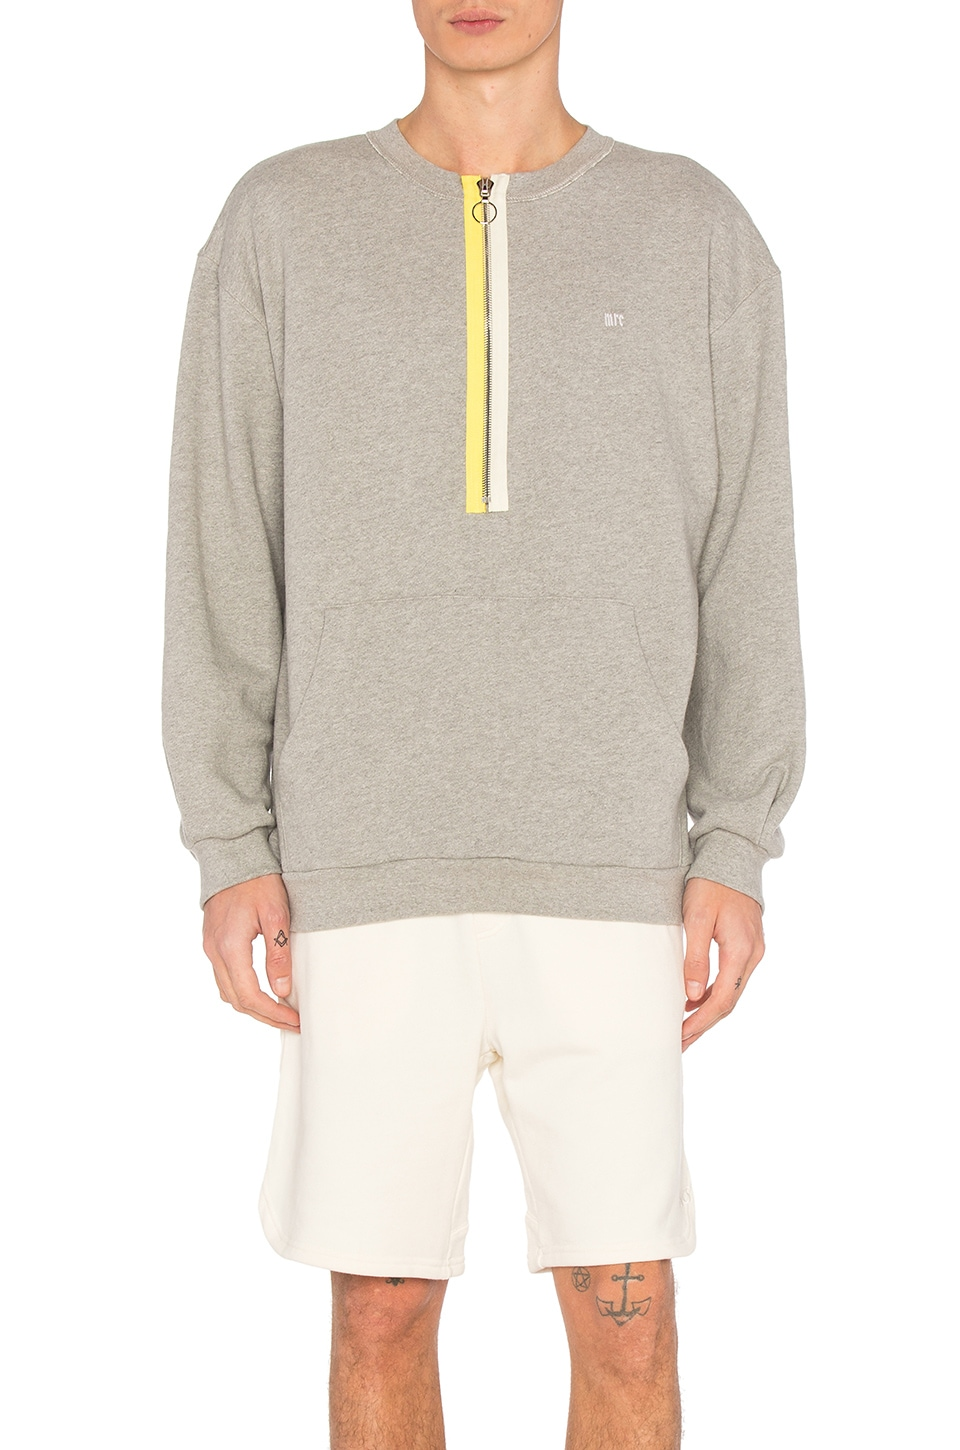 Zipper Crewneck by Mr. Completely